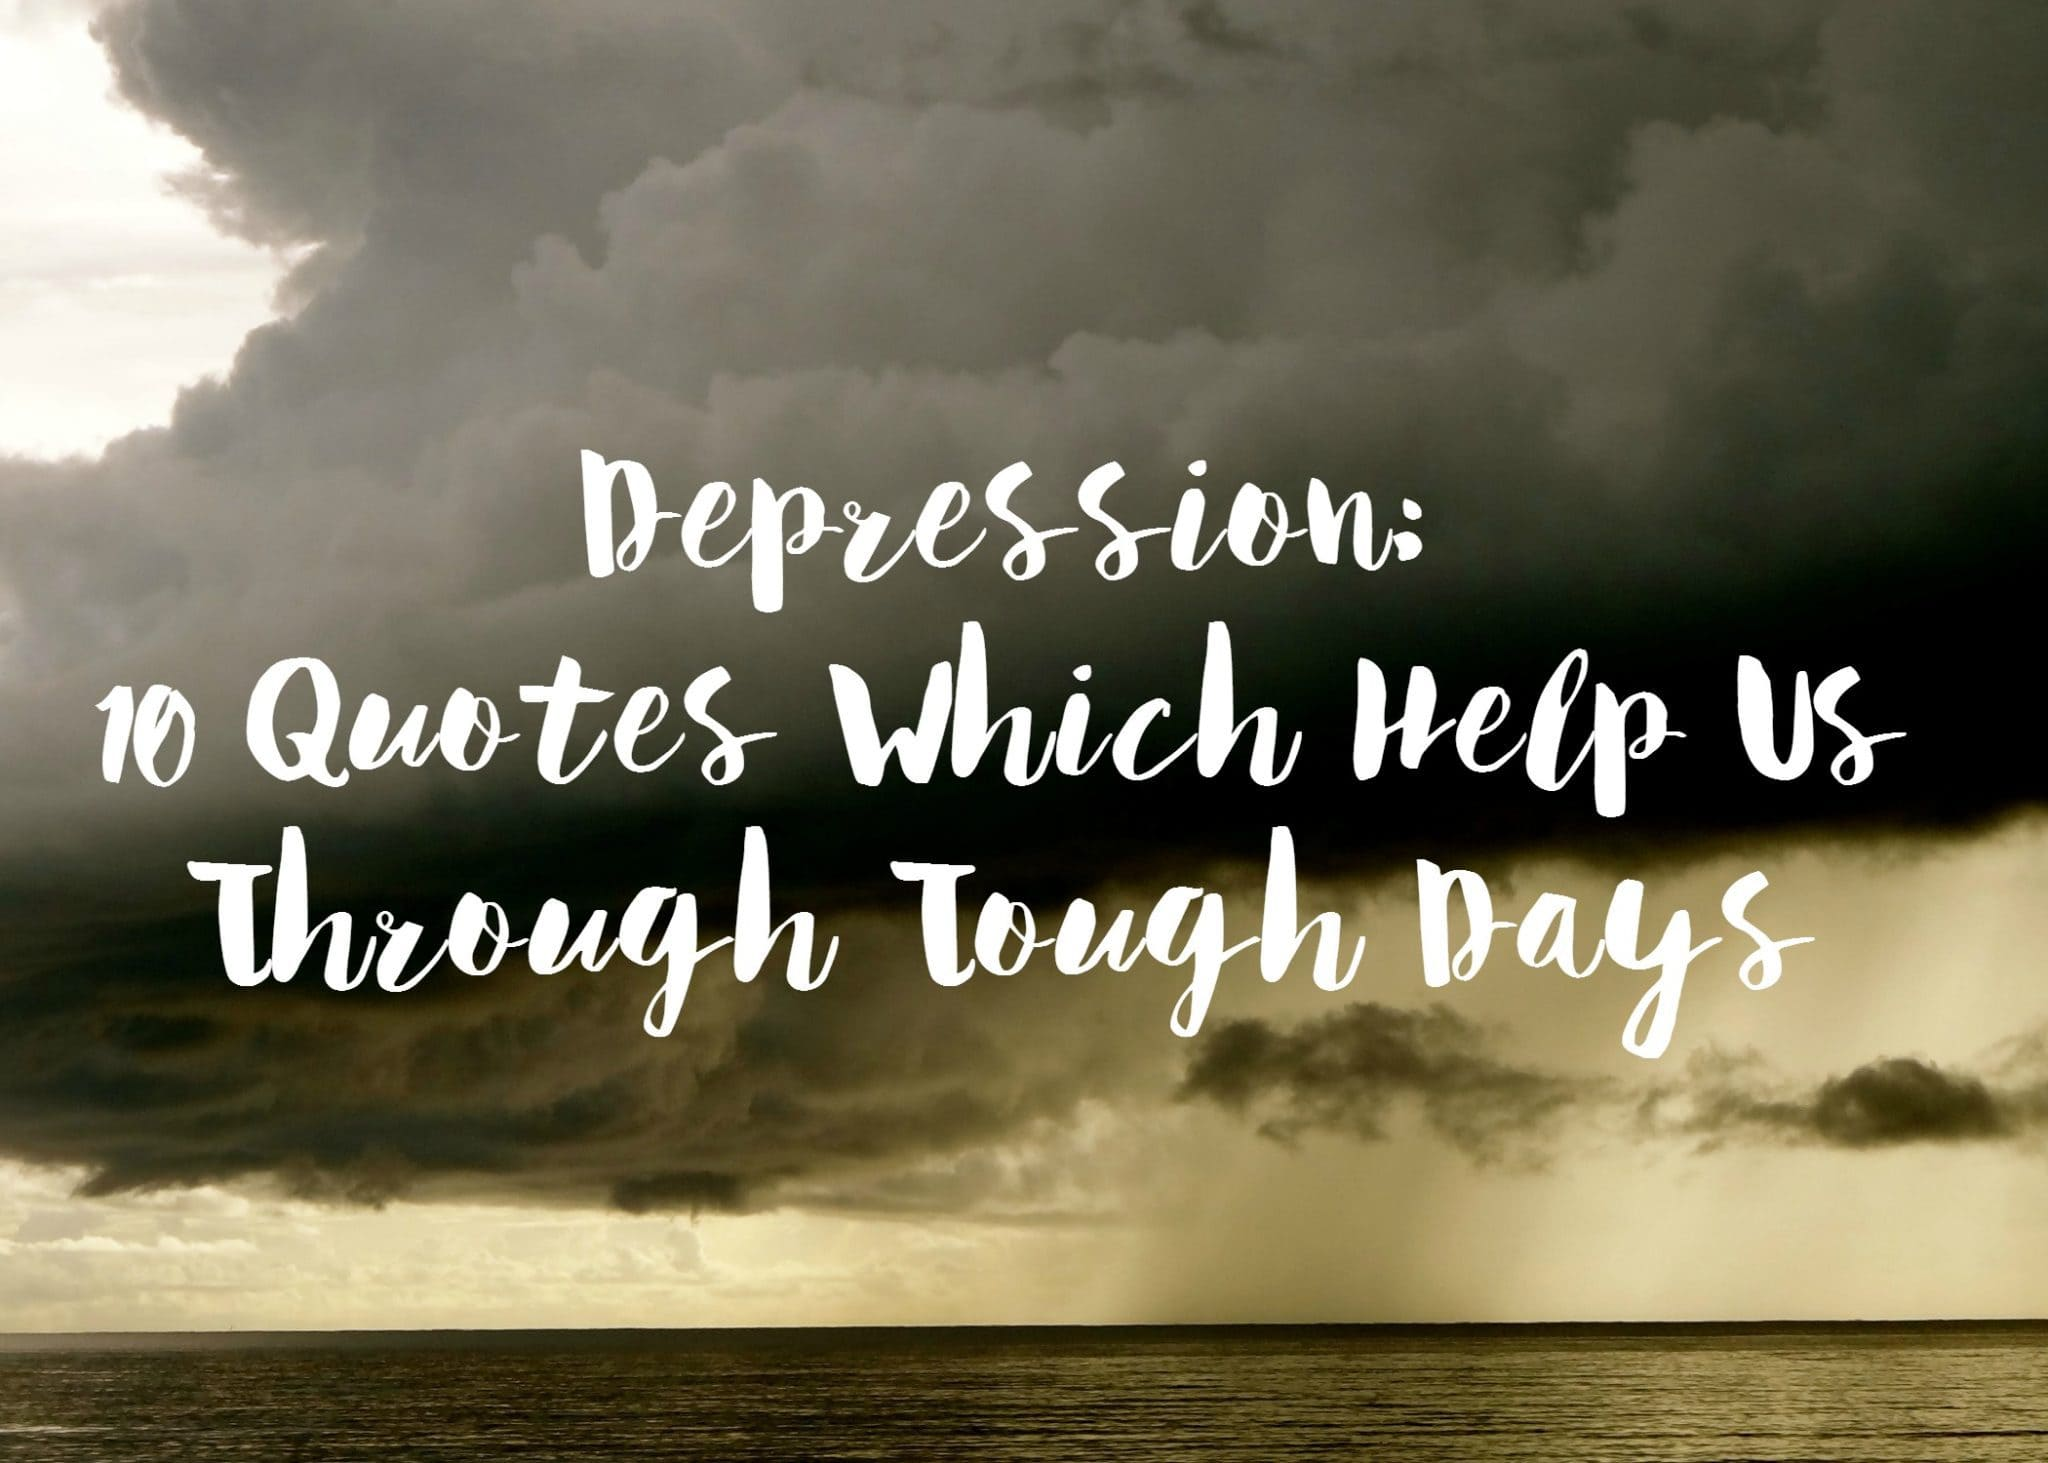 Quotes To Help Depression Best Depression 10 Quotes Which Help Us Through Tough Days